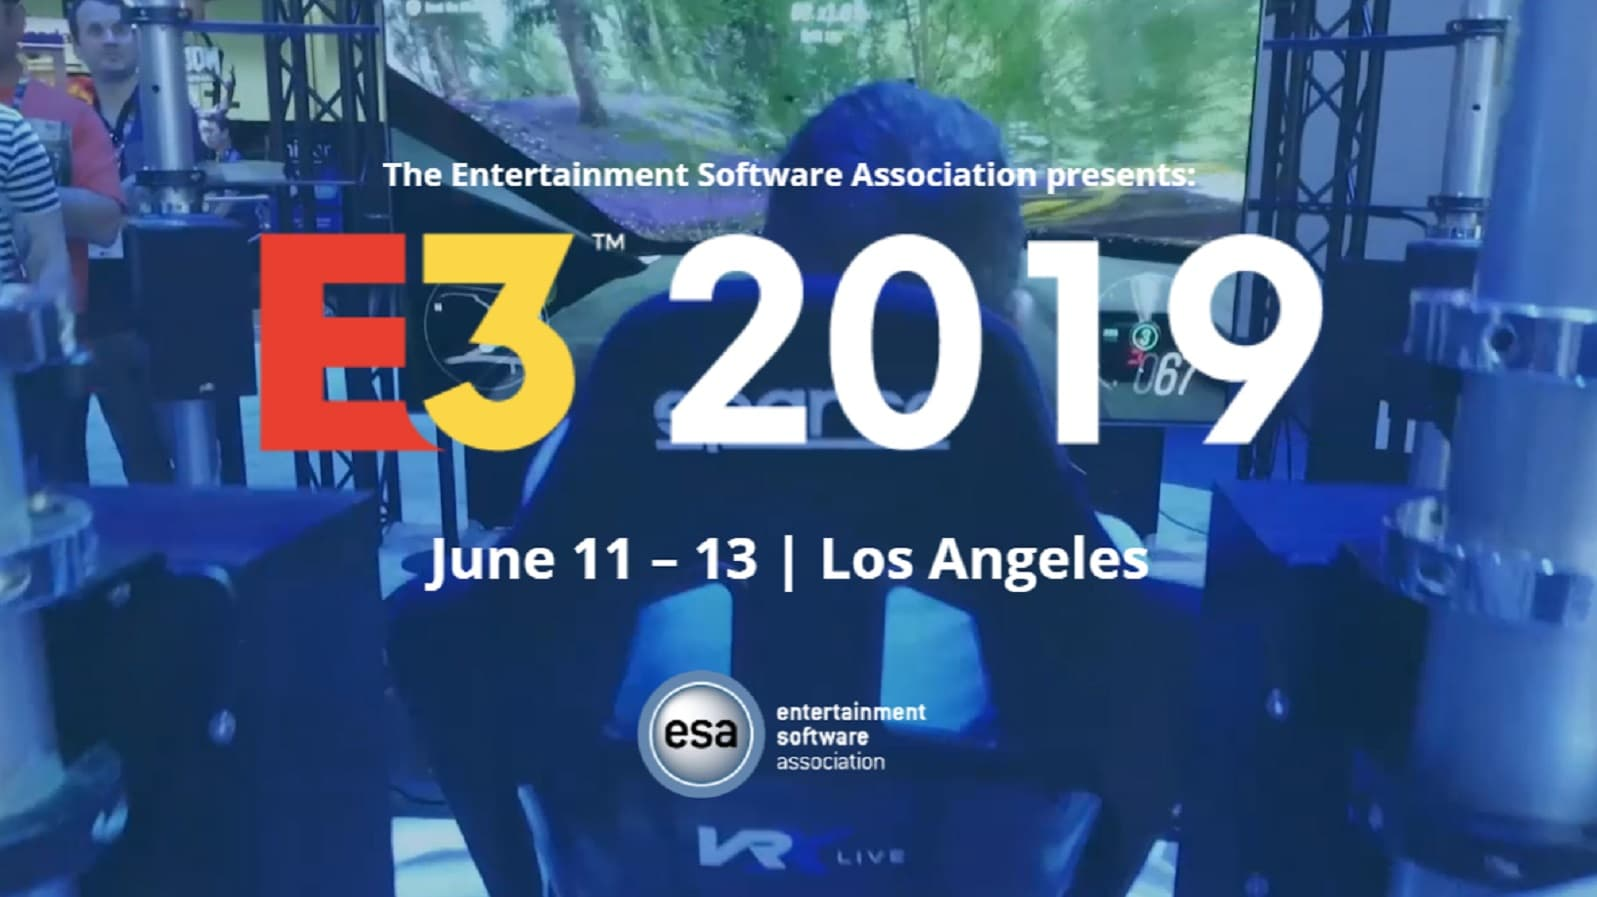 Some of the biggest rumors coming out of E3 2019